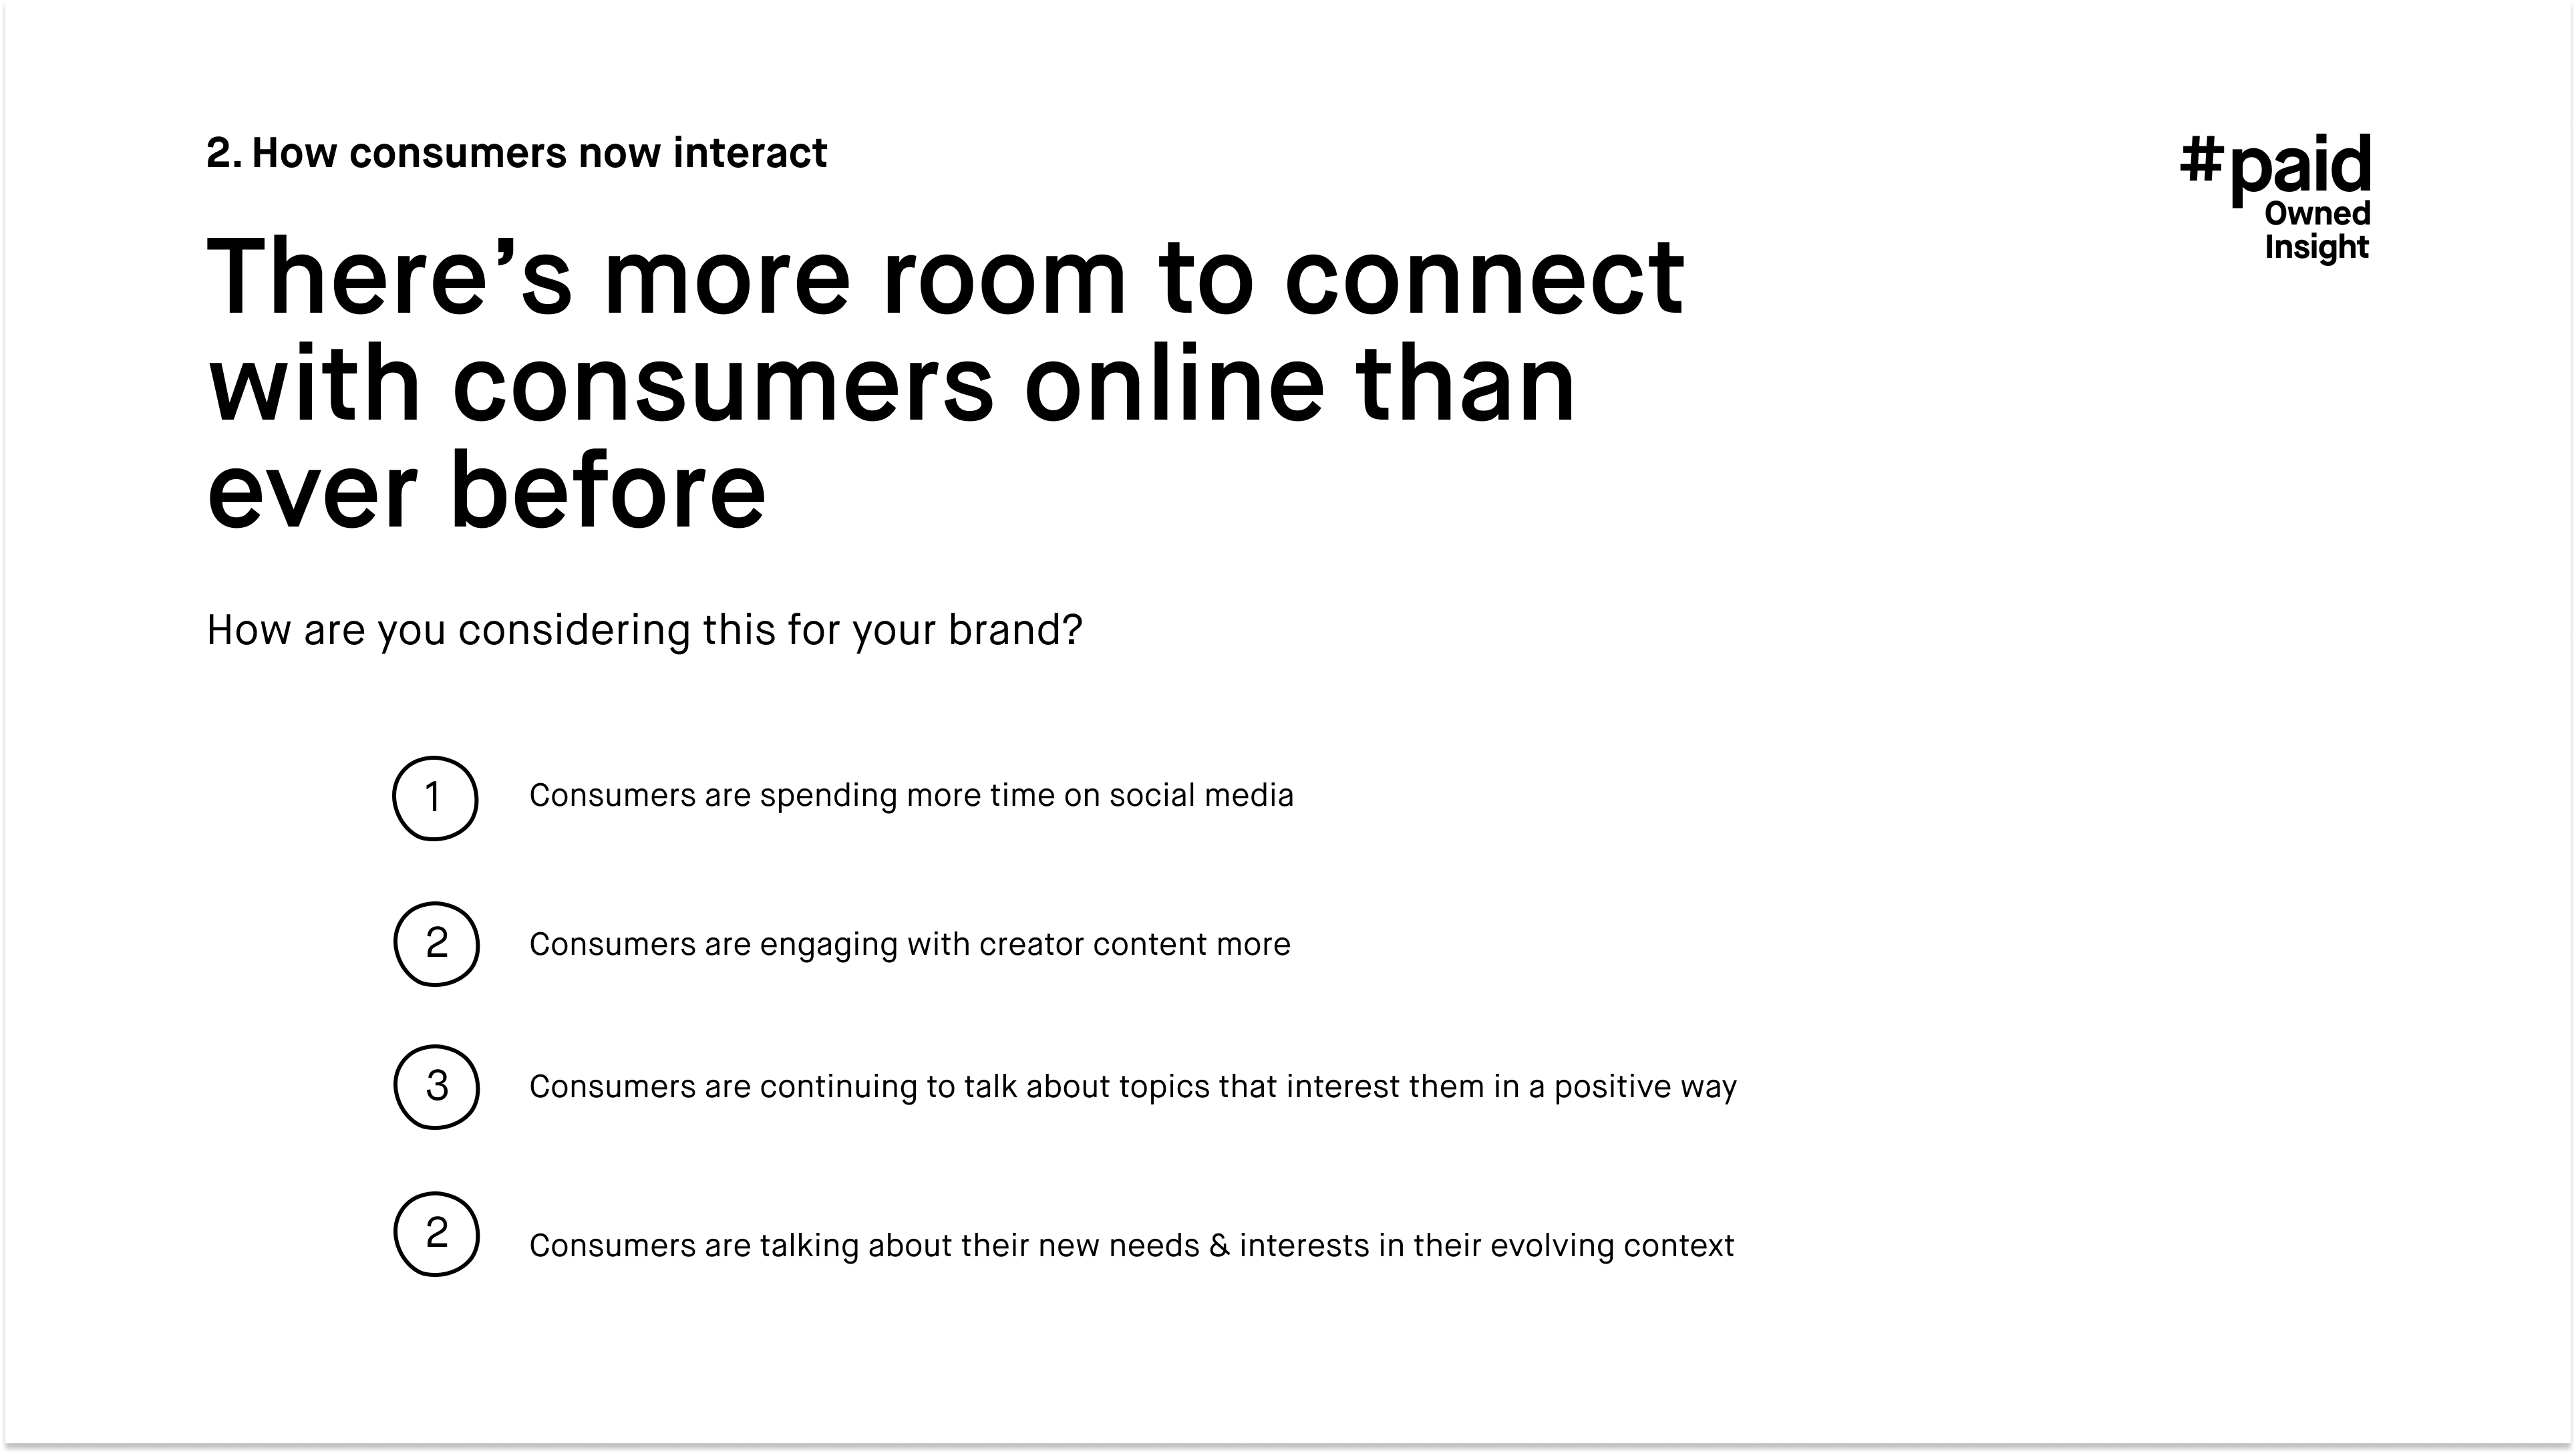 #paid_There's more room to connect with consumers online than ever before